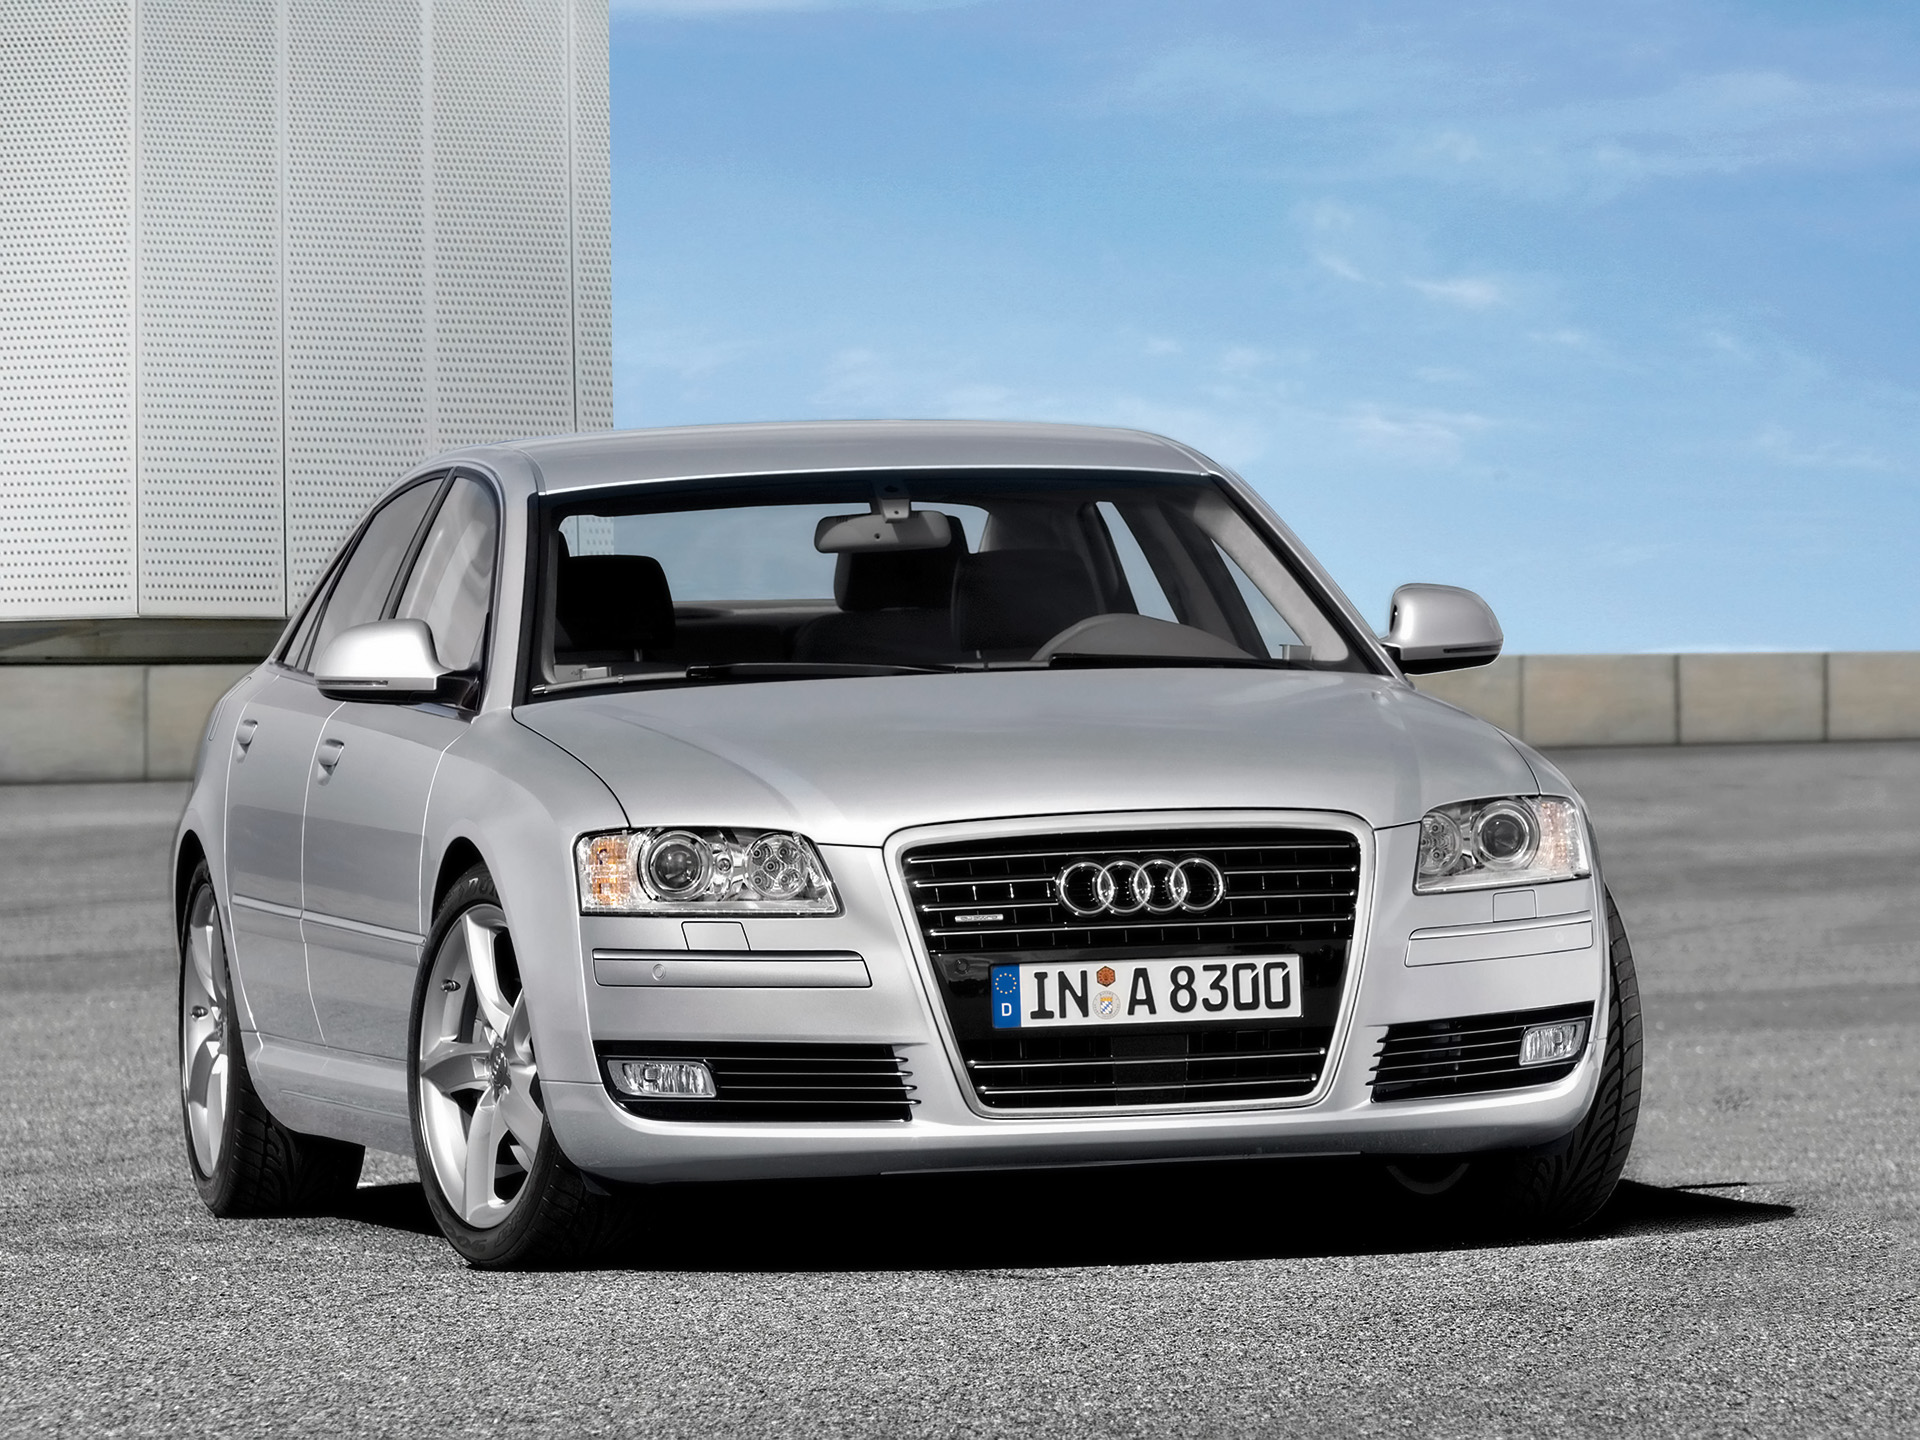 hight resolution of audi a8 3 7 wiring diagram wiring diagramaudi a8 3 7 wiring diagram